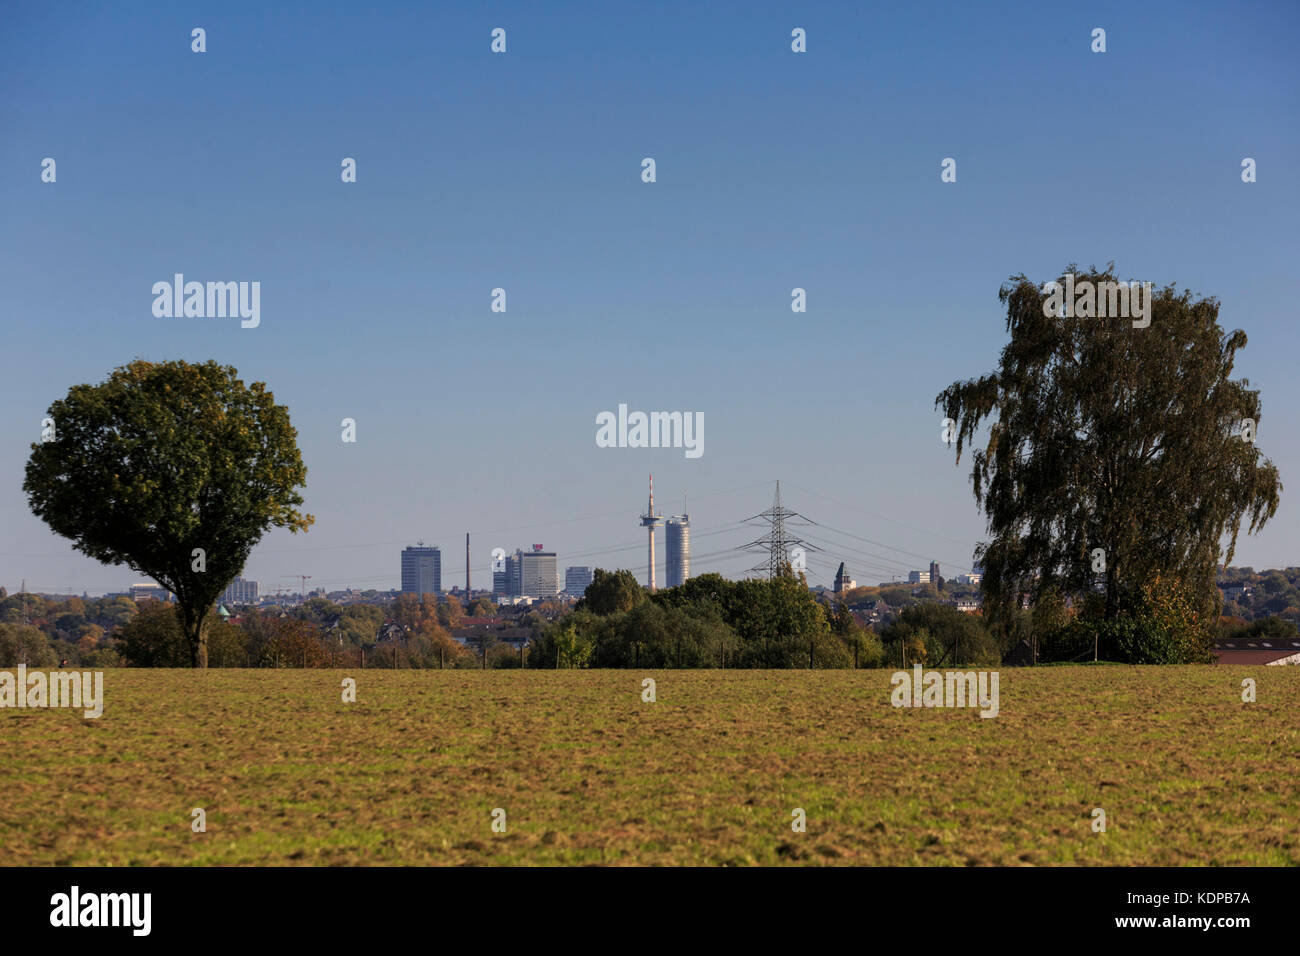 Skyline of the city of Essen, Ruhr Area, Germany - Stock Image